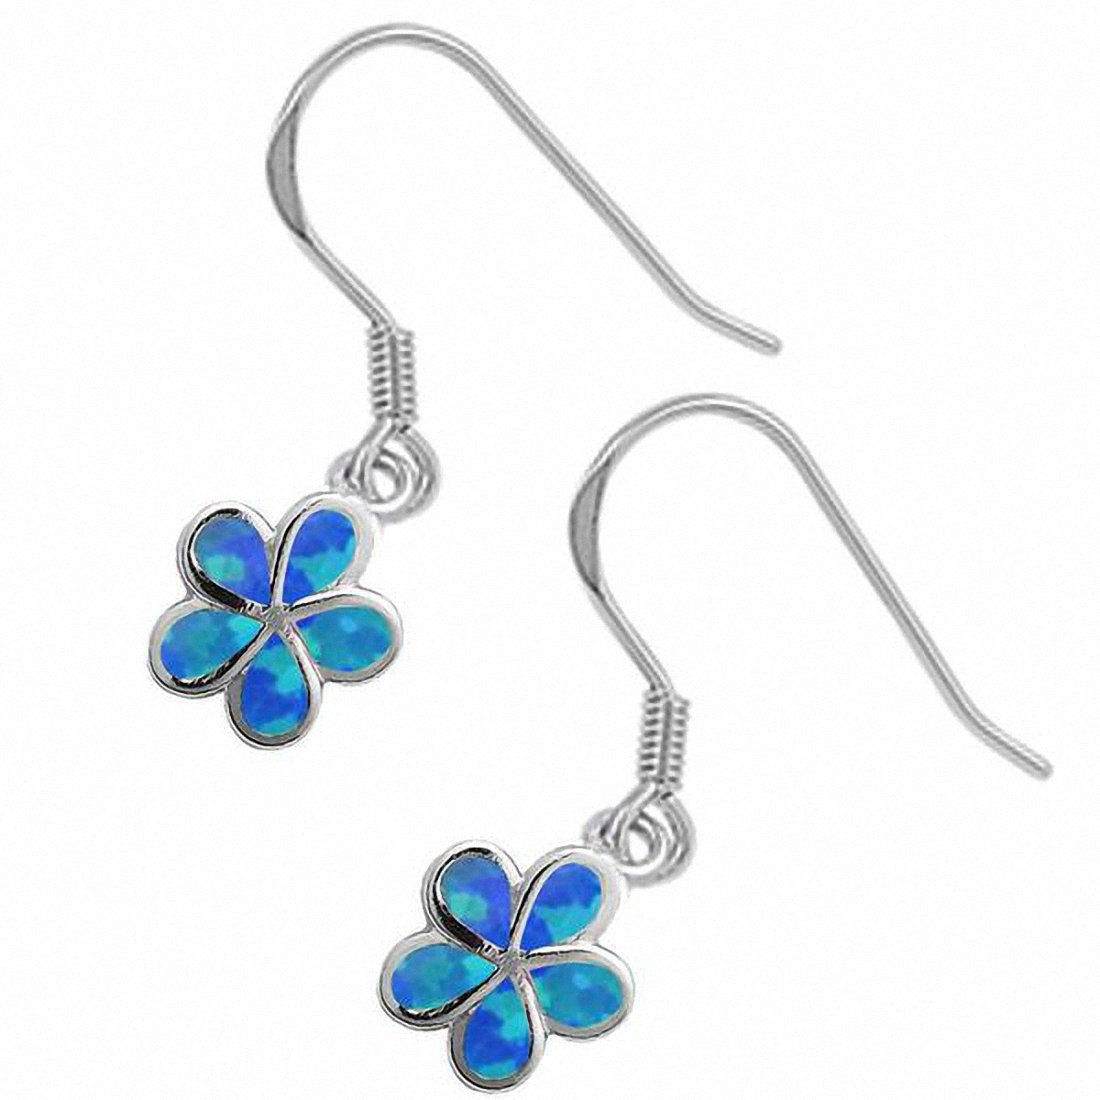 Dangling Clover Leaf Fish Hook Earrings Created Opal 925 Sterling Silver Choose Color